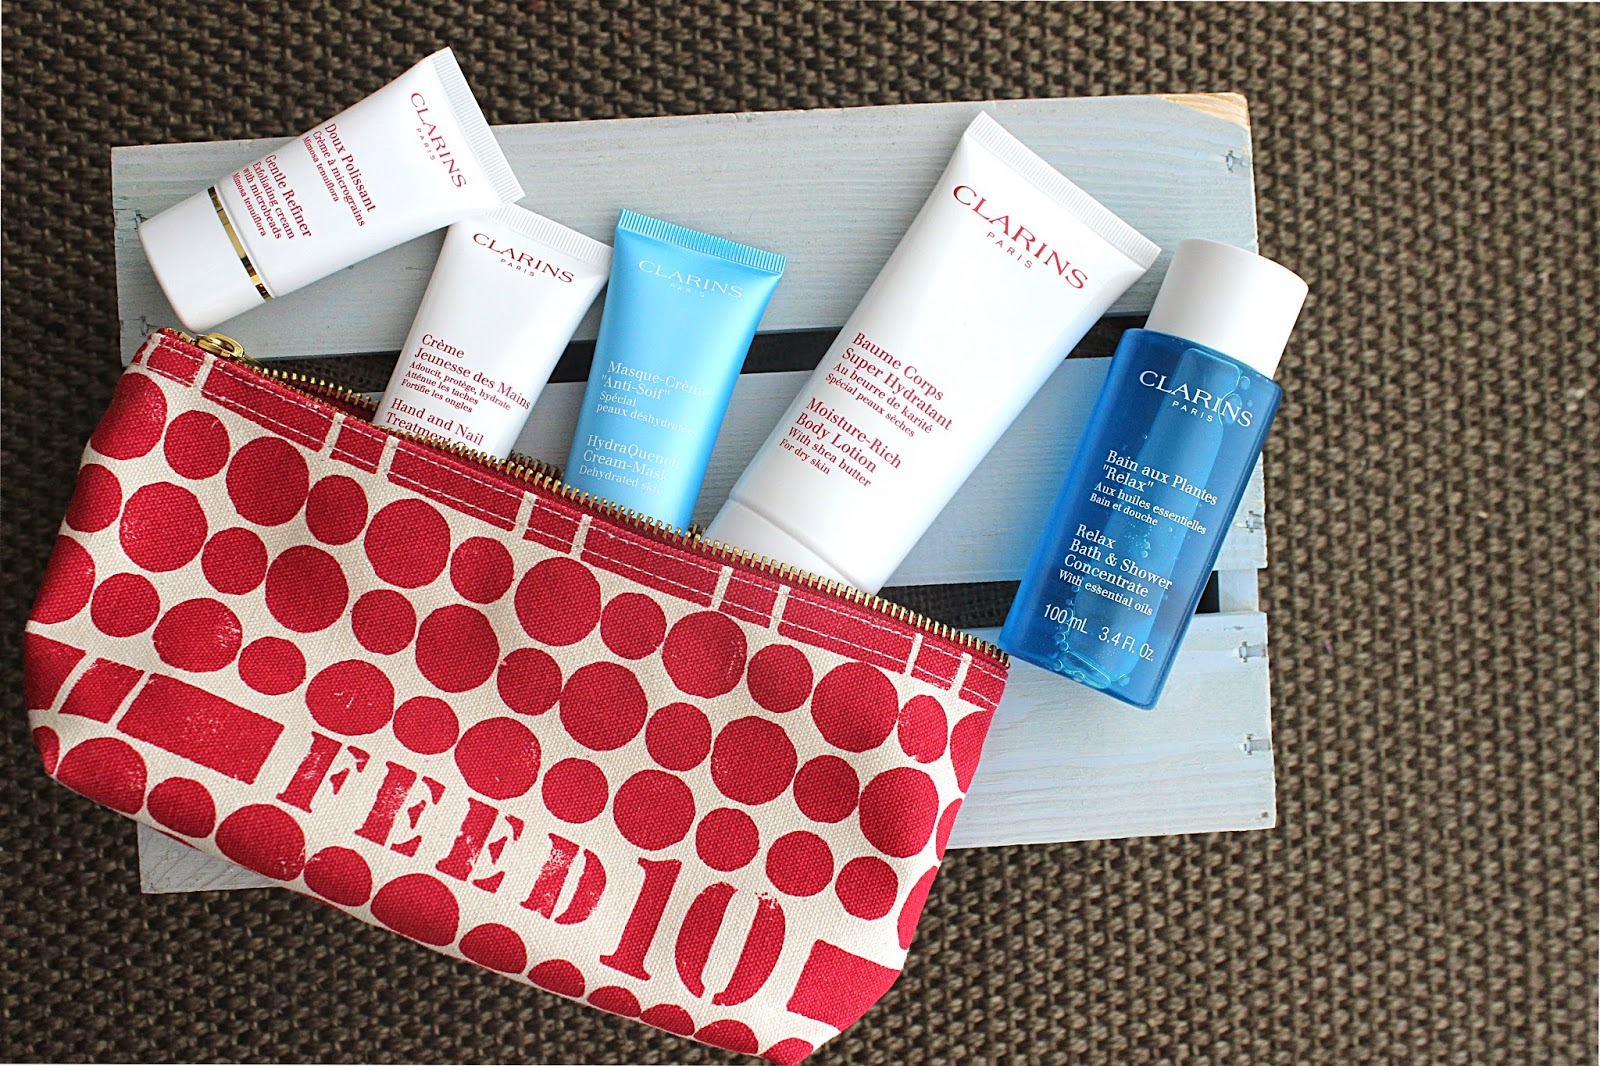 Until October 4th With Every Two Purchases Of Clarins Products You Will Receive A Feed 10 Gift Purpose Each Bag Provides Nutritious School